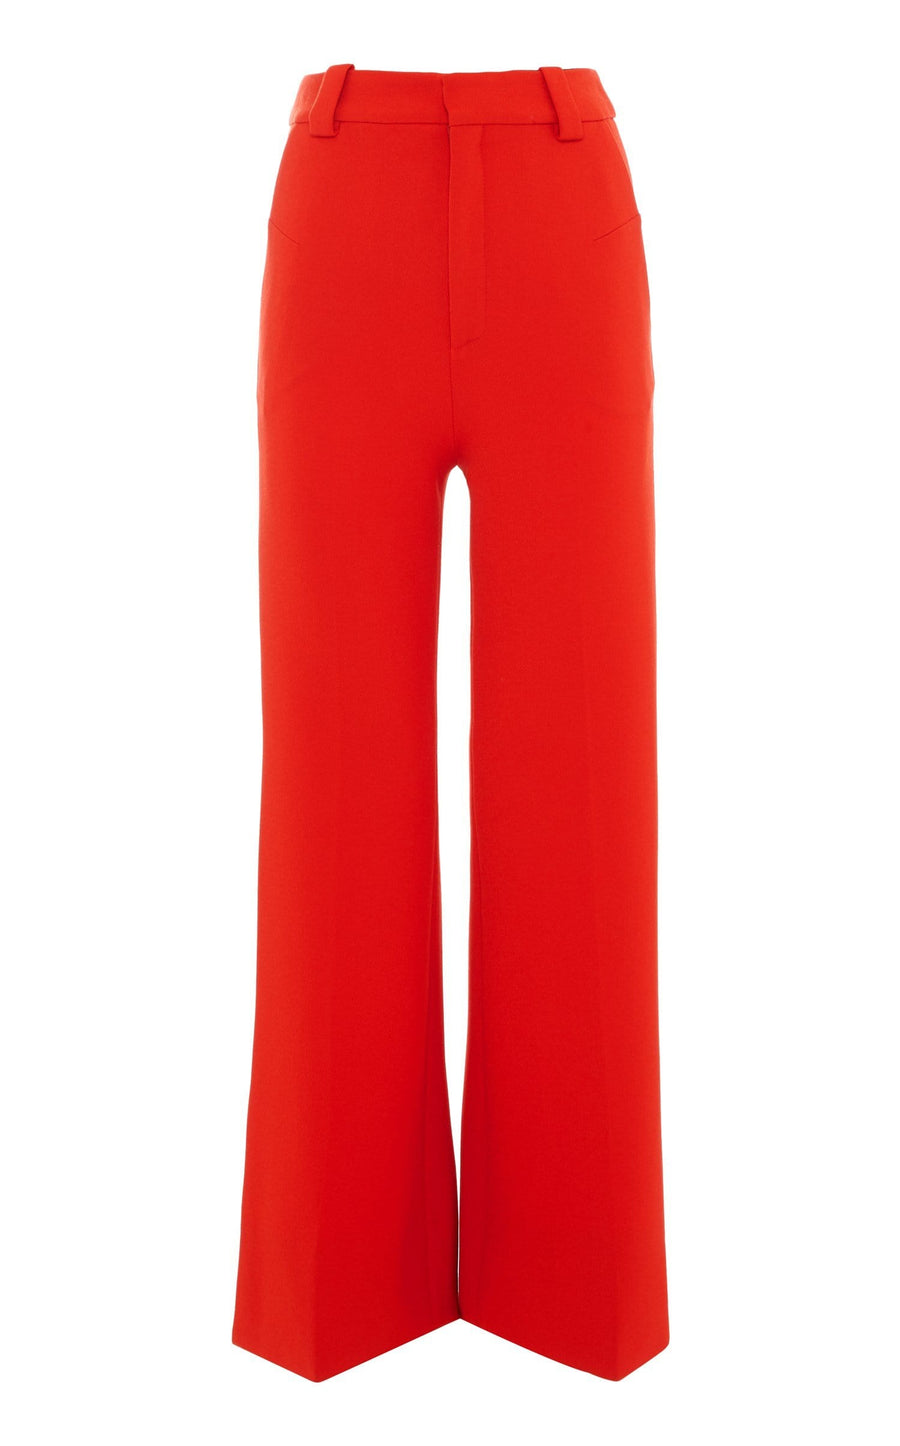 Dilman Trouser In Poppy Red from Roland Mouret